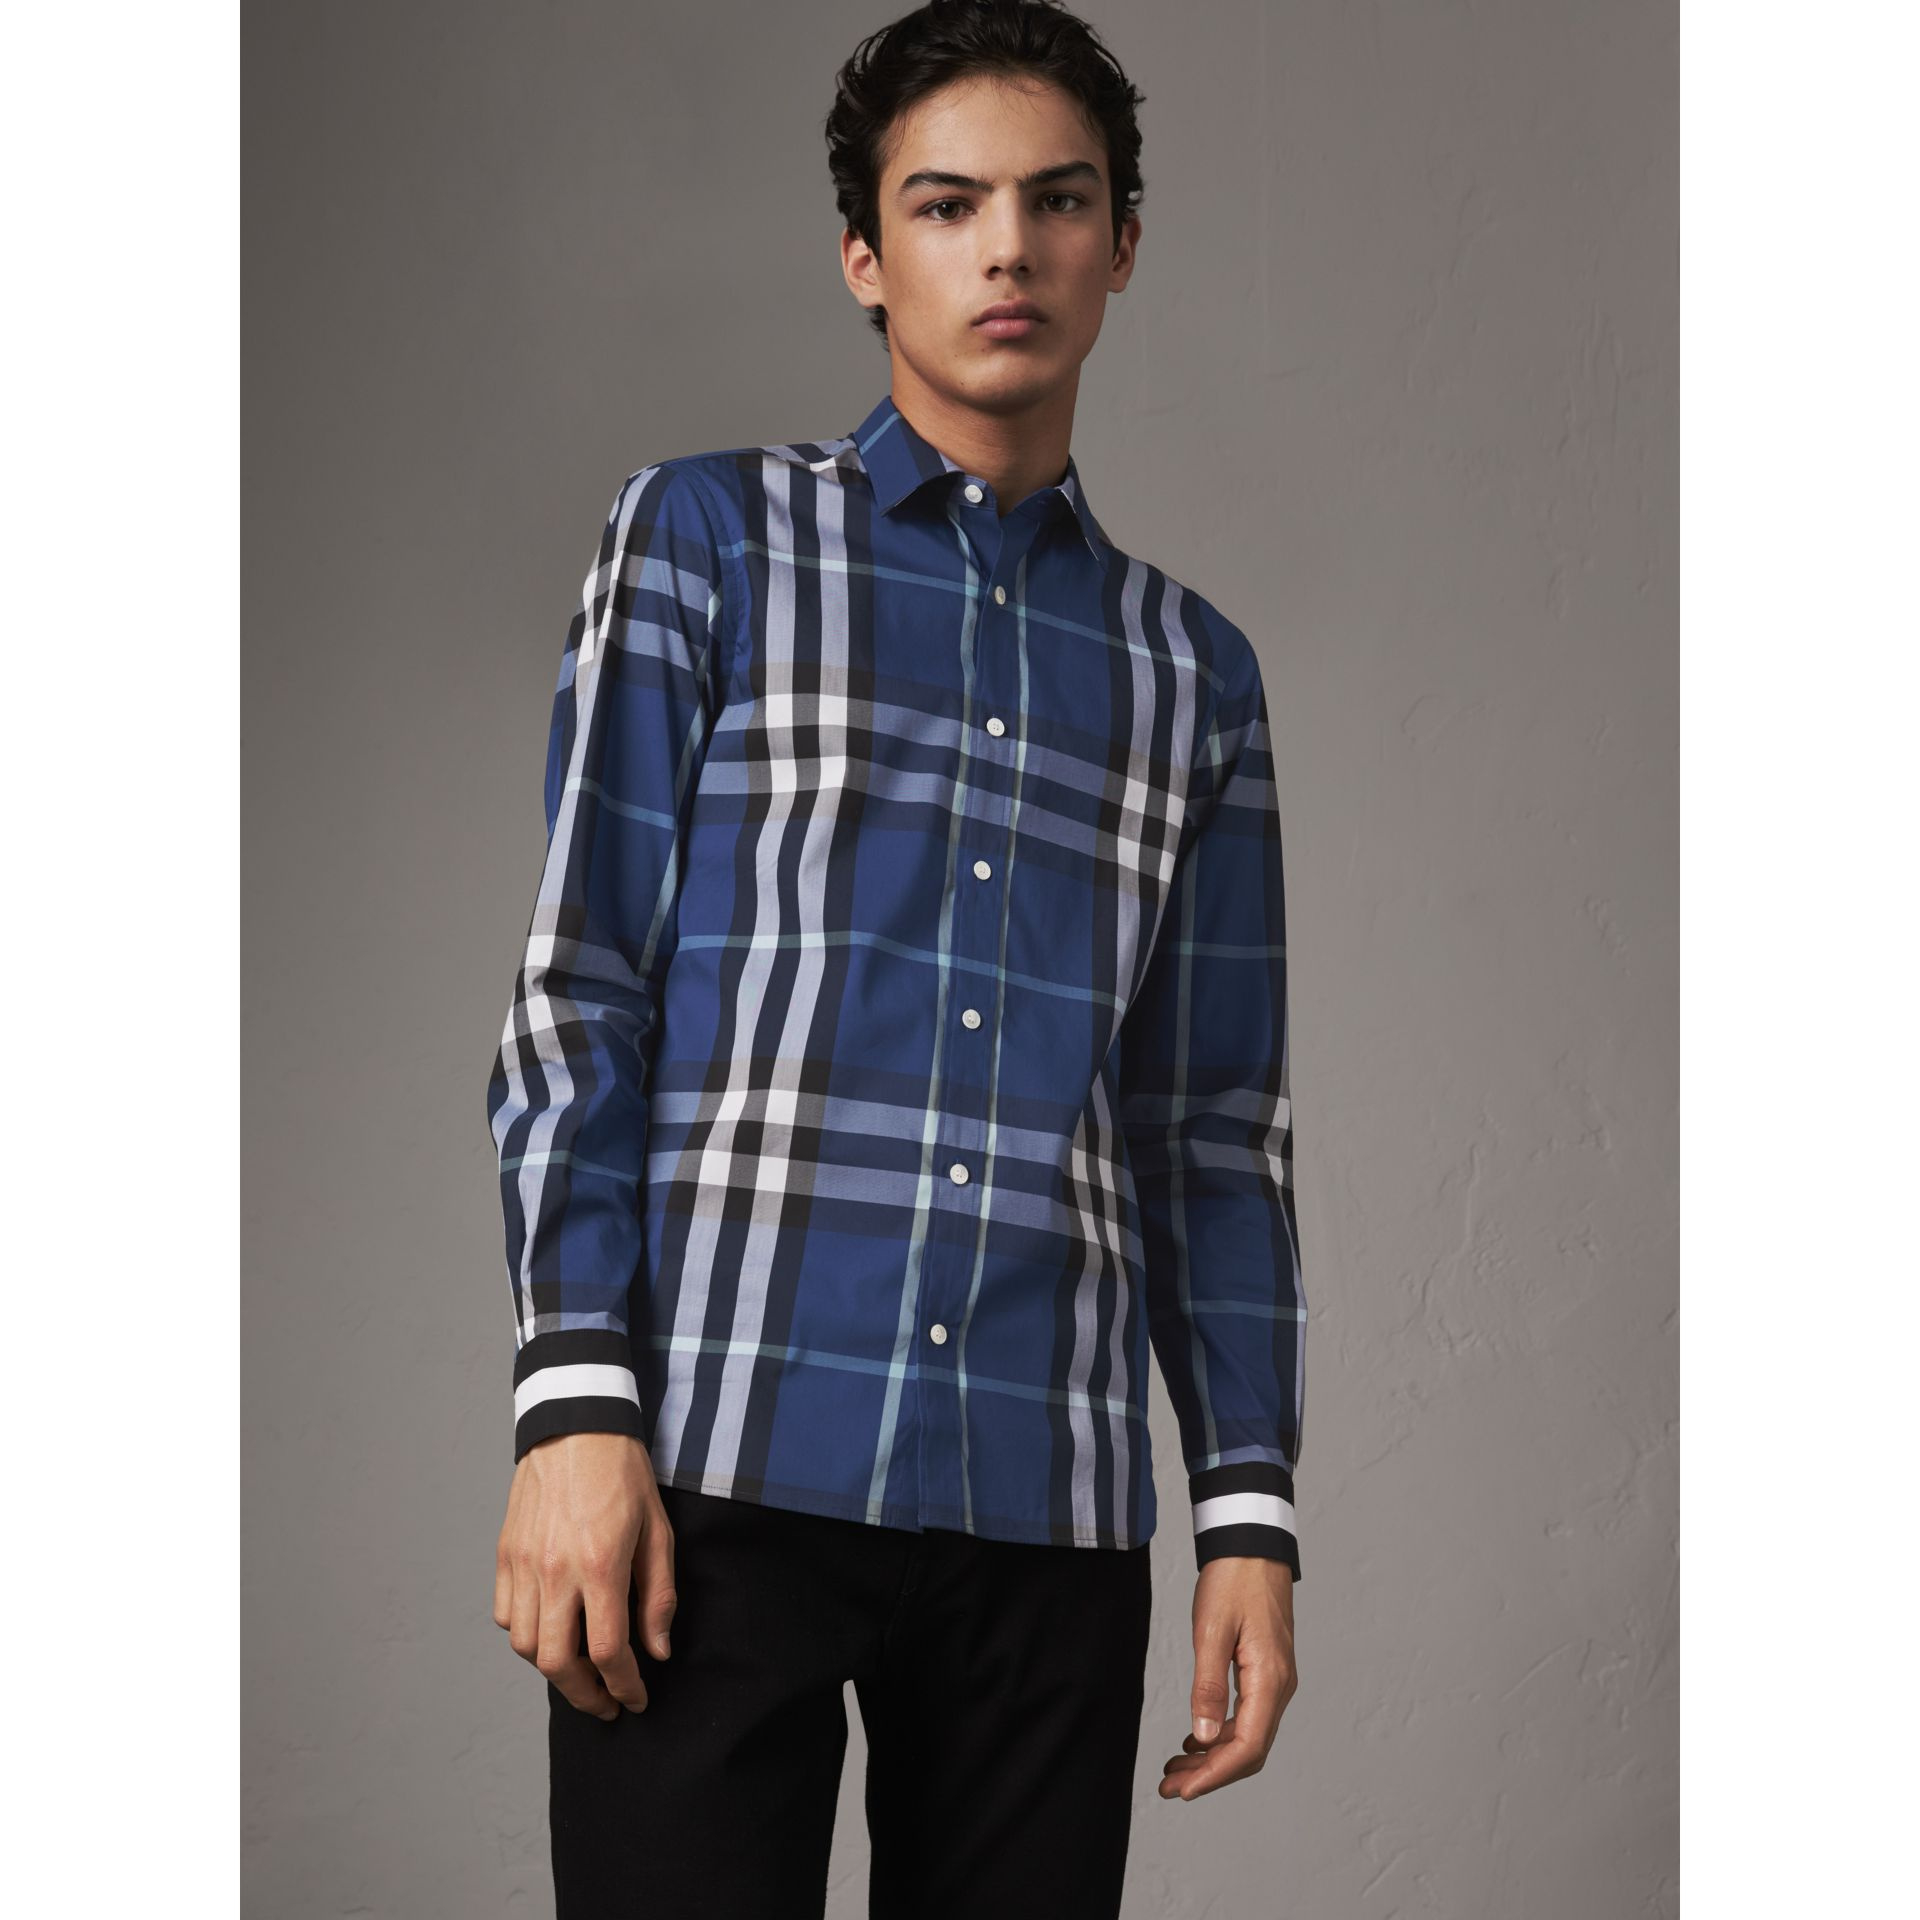 Striped Cuff Check Cotton Blend Shirt in Cobalt Blue - Men | Burberry - gallery image 5